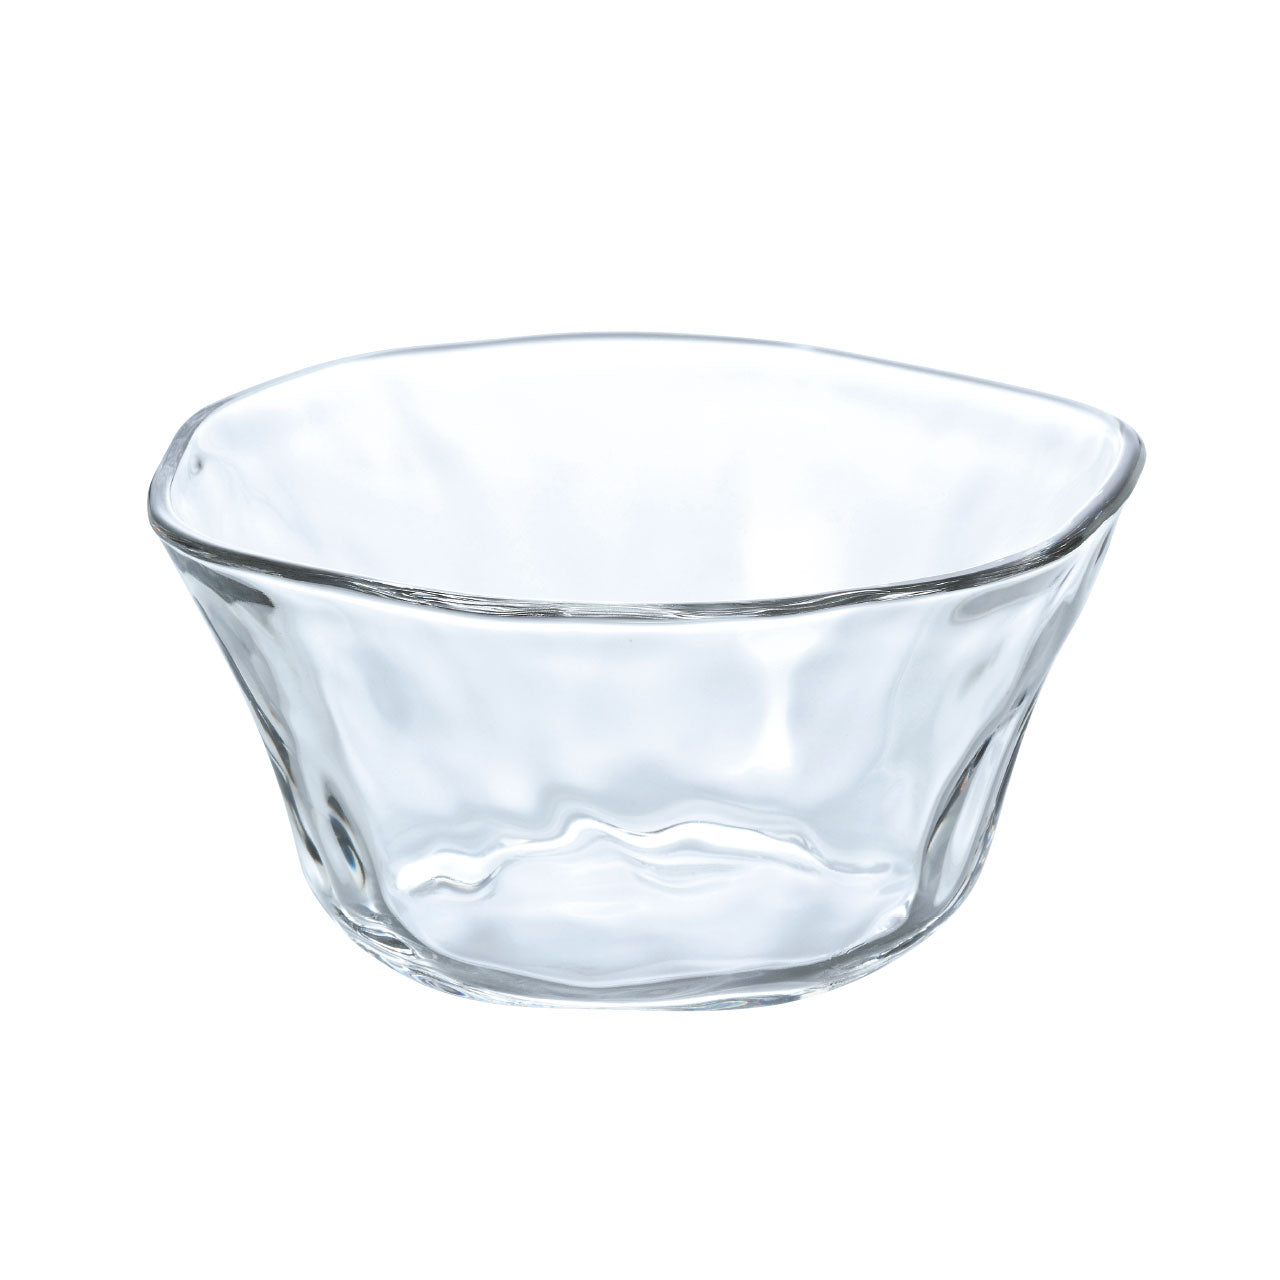 "Organic Shaped Glass Salad Bowl 27 fl oz / 6.5"" dia"